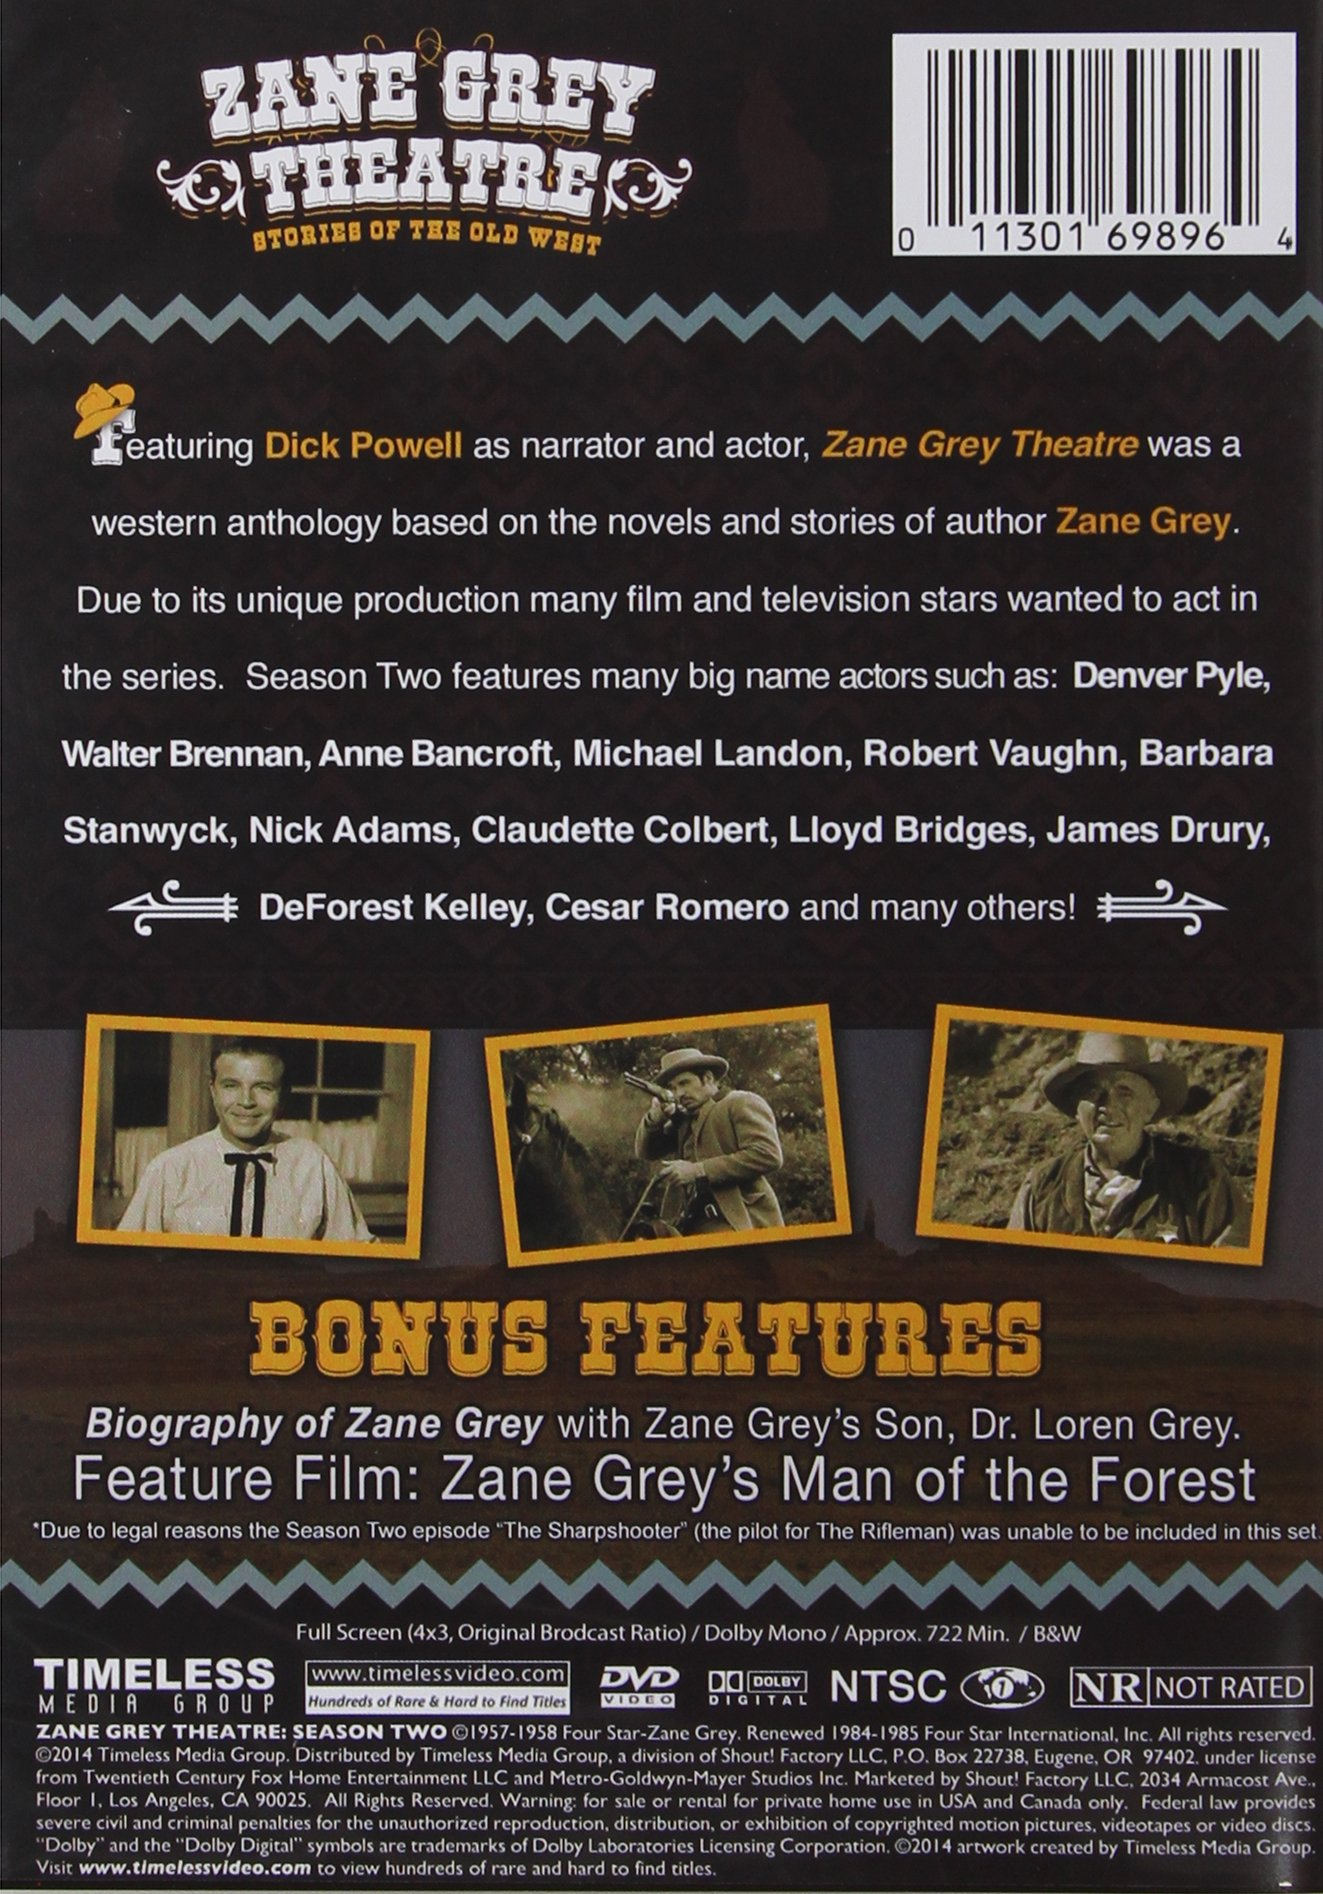 Zane Grey Theater: Season 2 by TIMELESS MEDIA GROUP